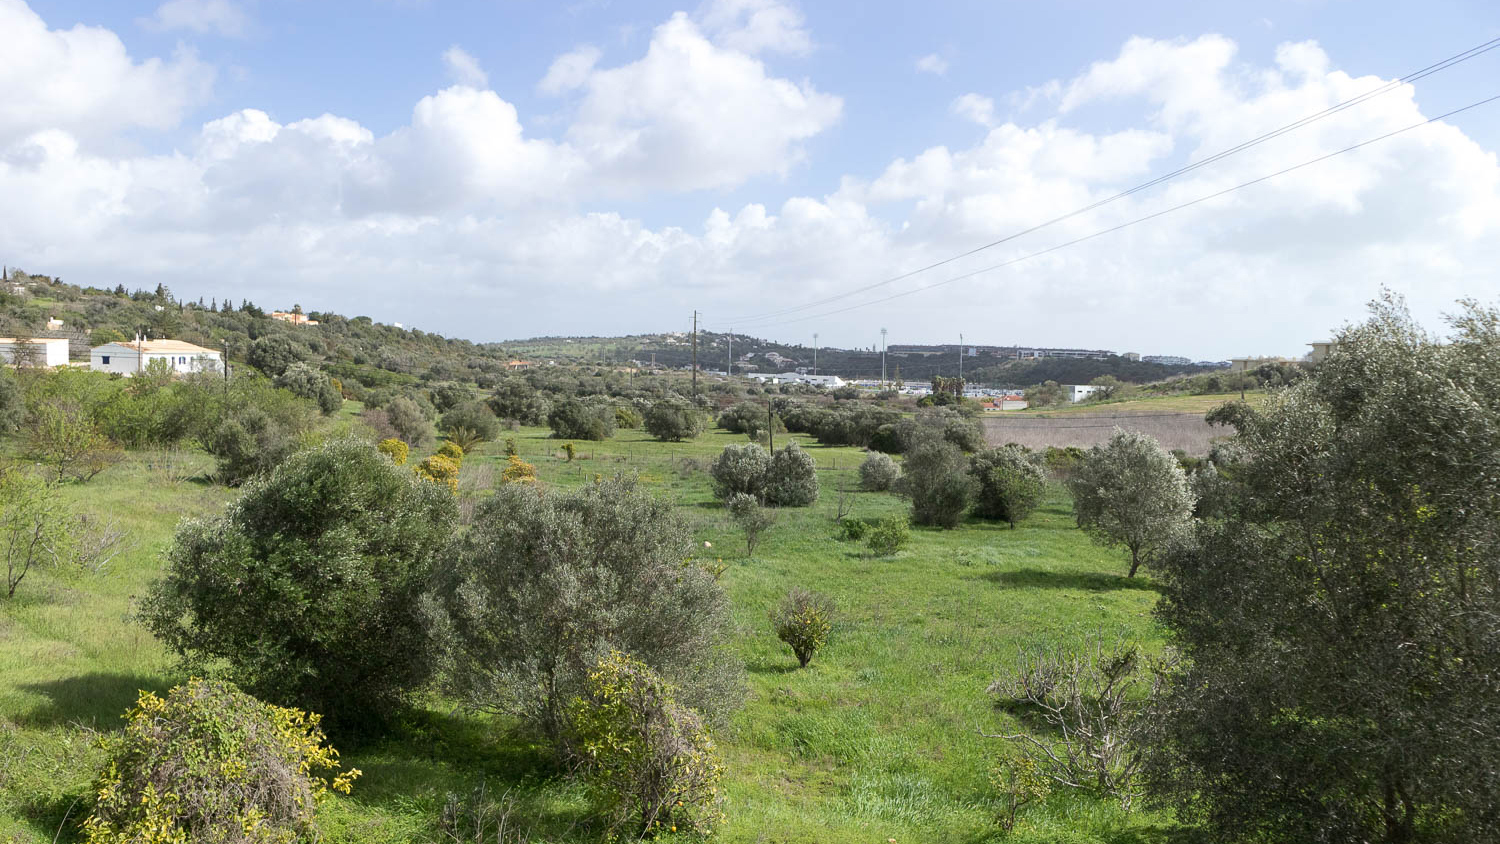 Development land for sale in Lagos, West Algarve | LG1033 An amazing investment opportunity. A large plot of 6960m2 for construction available on the outskirts of Lagos and within easy reach of the marina, town and beaches.